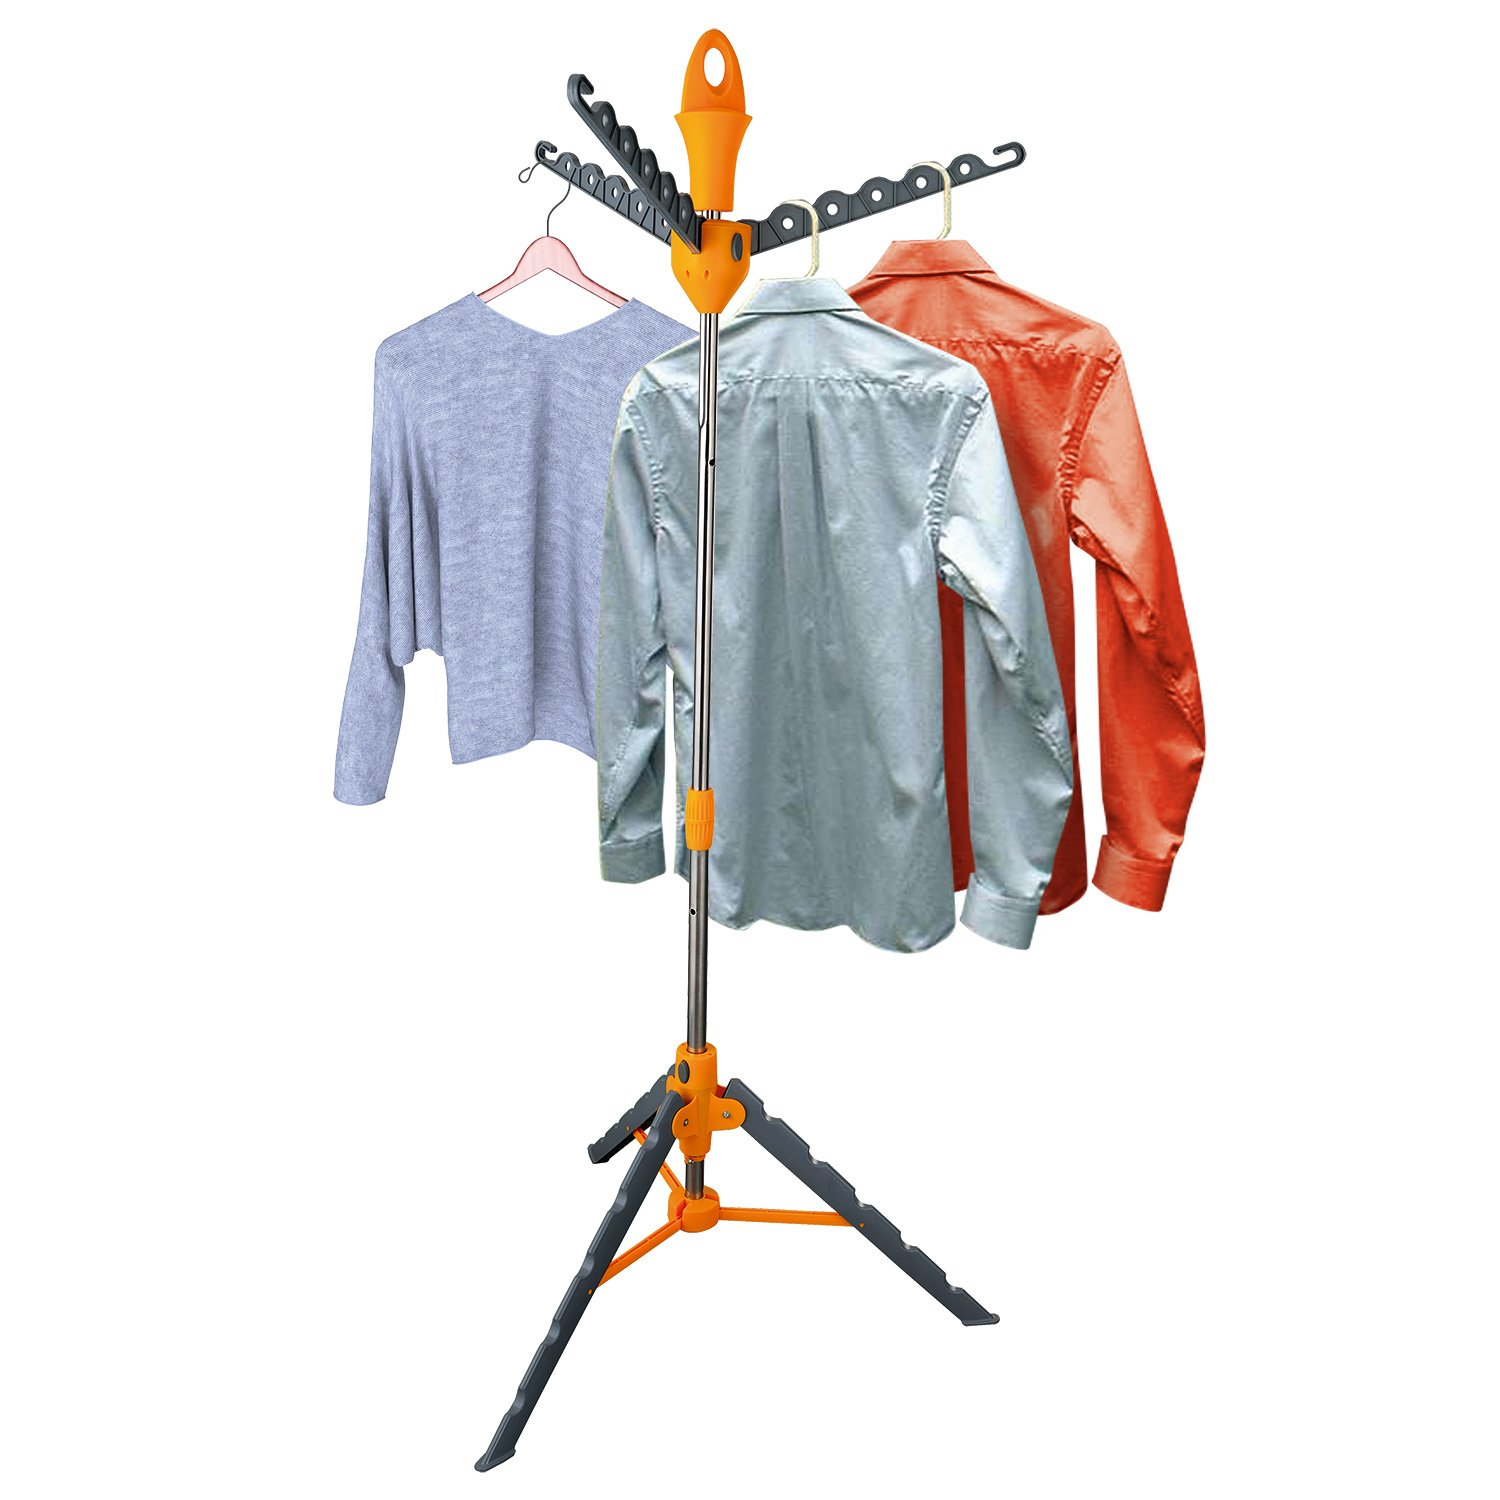 Top Home Solutions Multi Portable Folding Standing Tier Garment Hanger Multifunction Stand Clothes Shirt Dryer Airer Kitchen